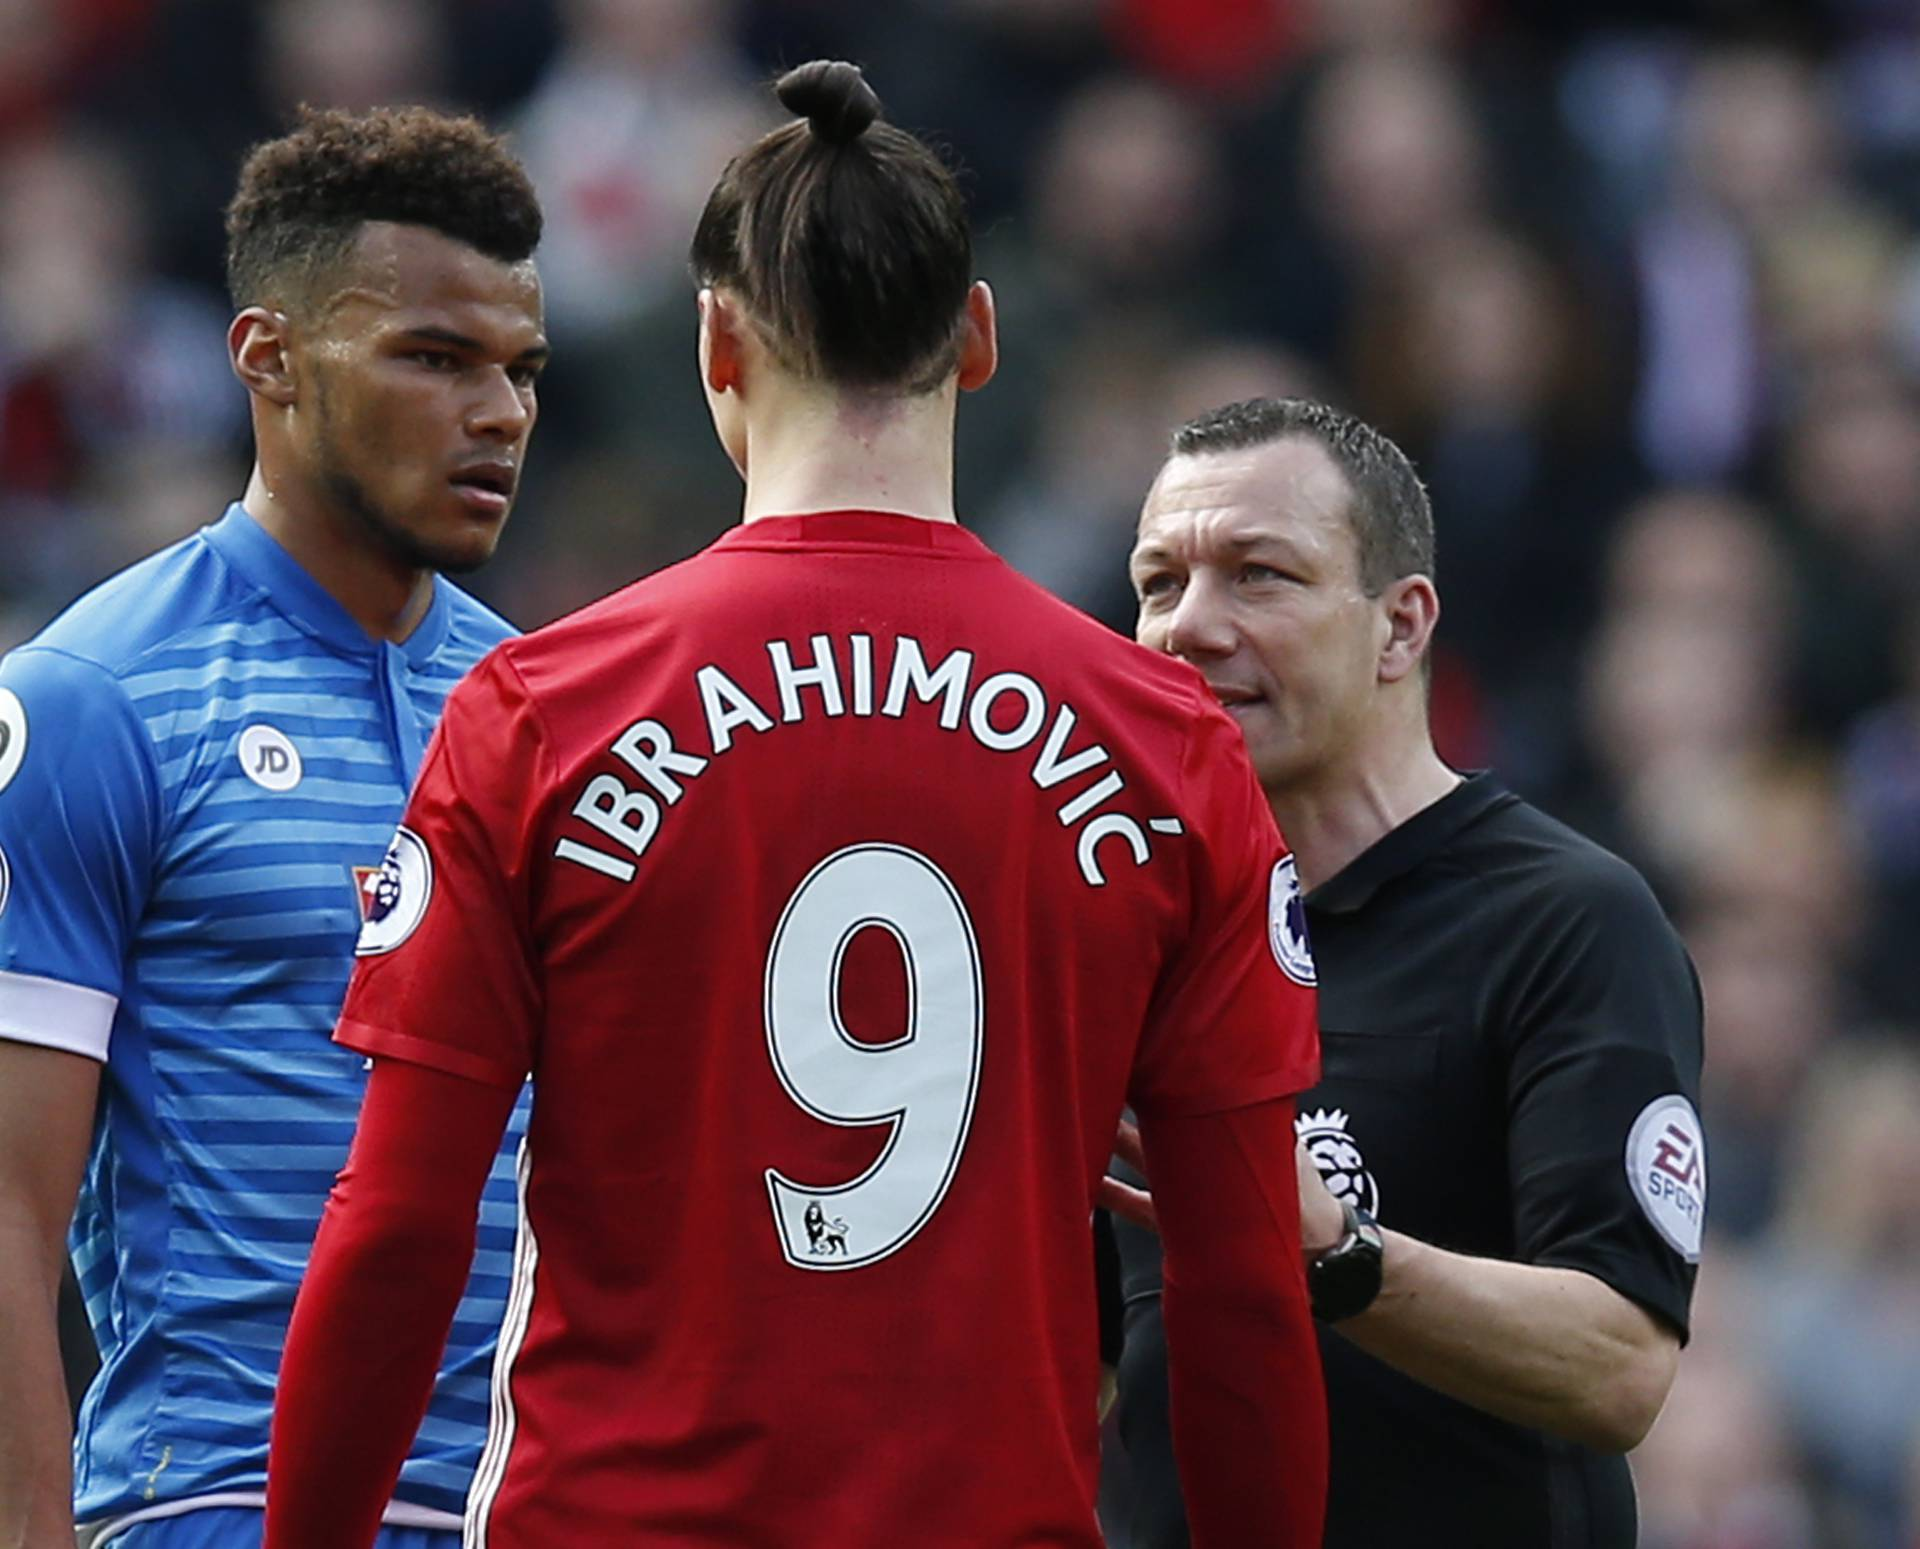 Manchester United's Zlatan Ibrahimovic and Bournemouth's Tyrone Mings are spoken to by referee Kevin Friend